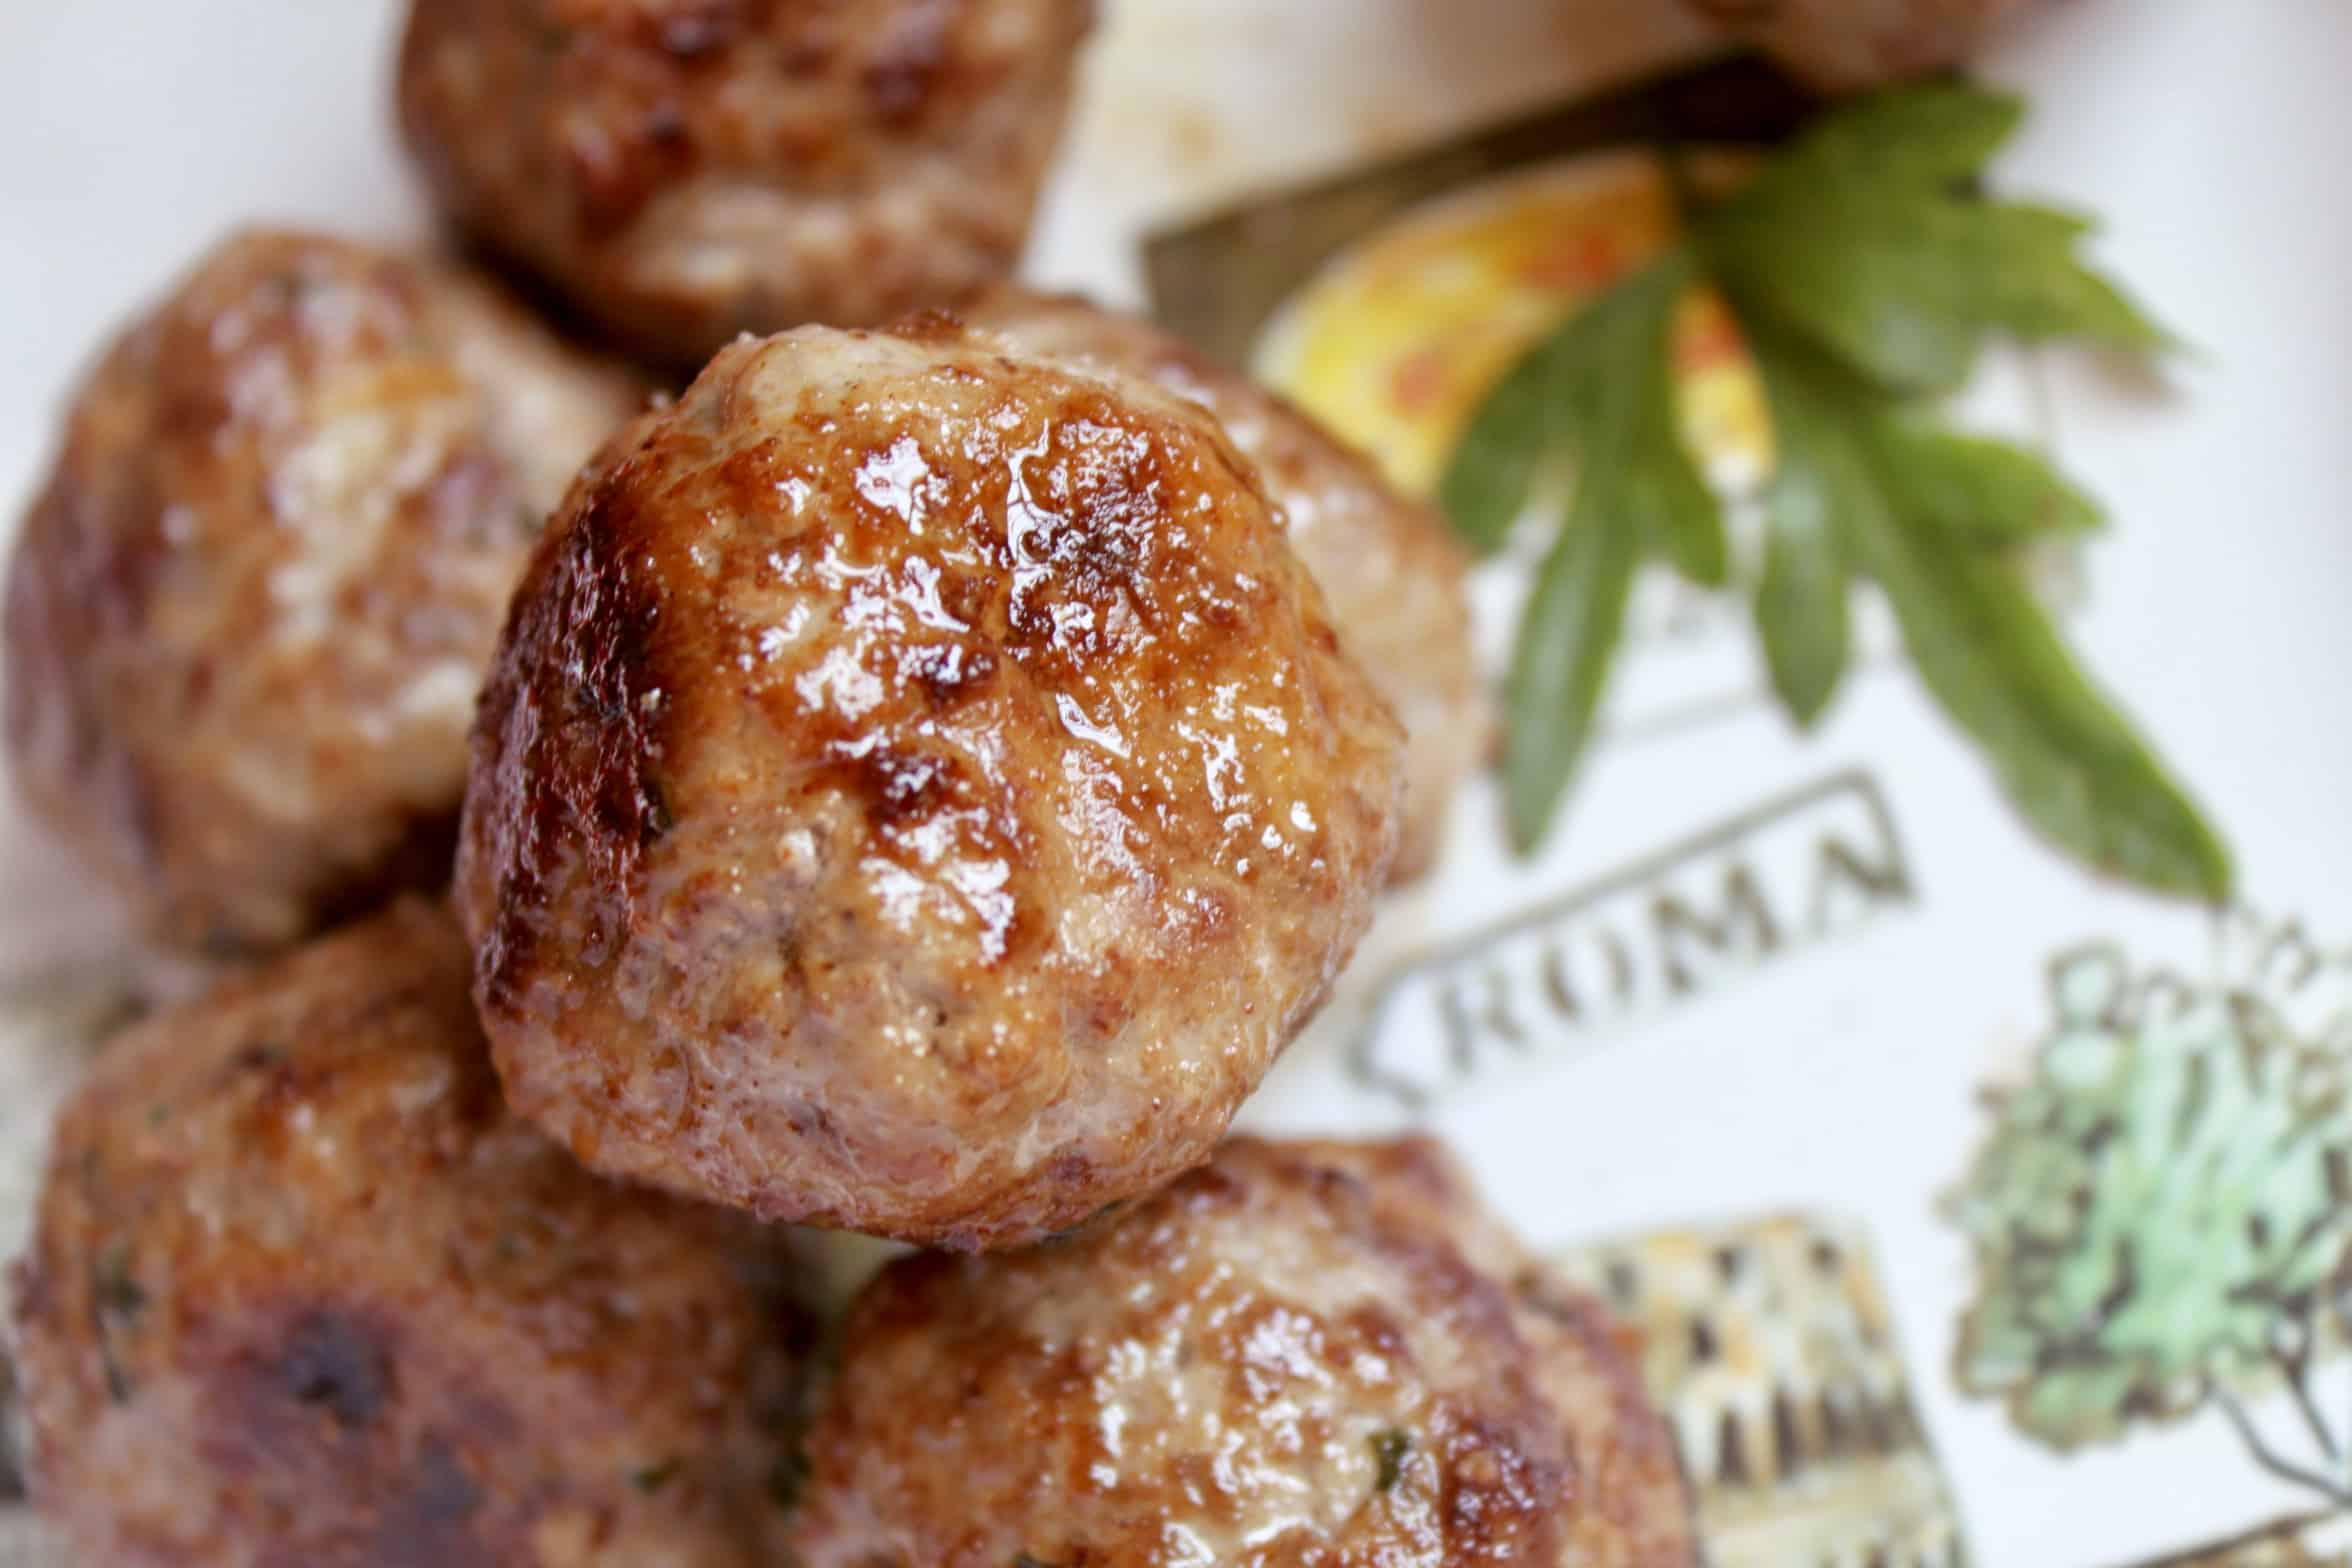 meatballs piled on a plate